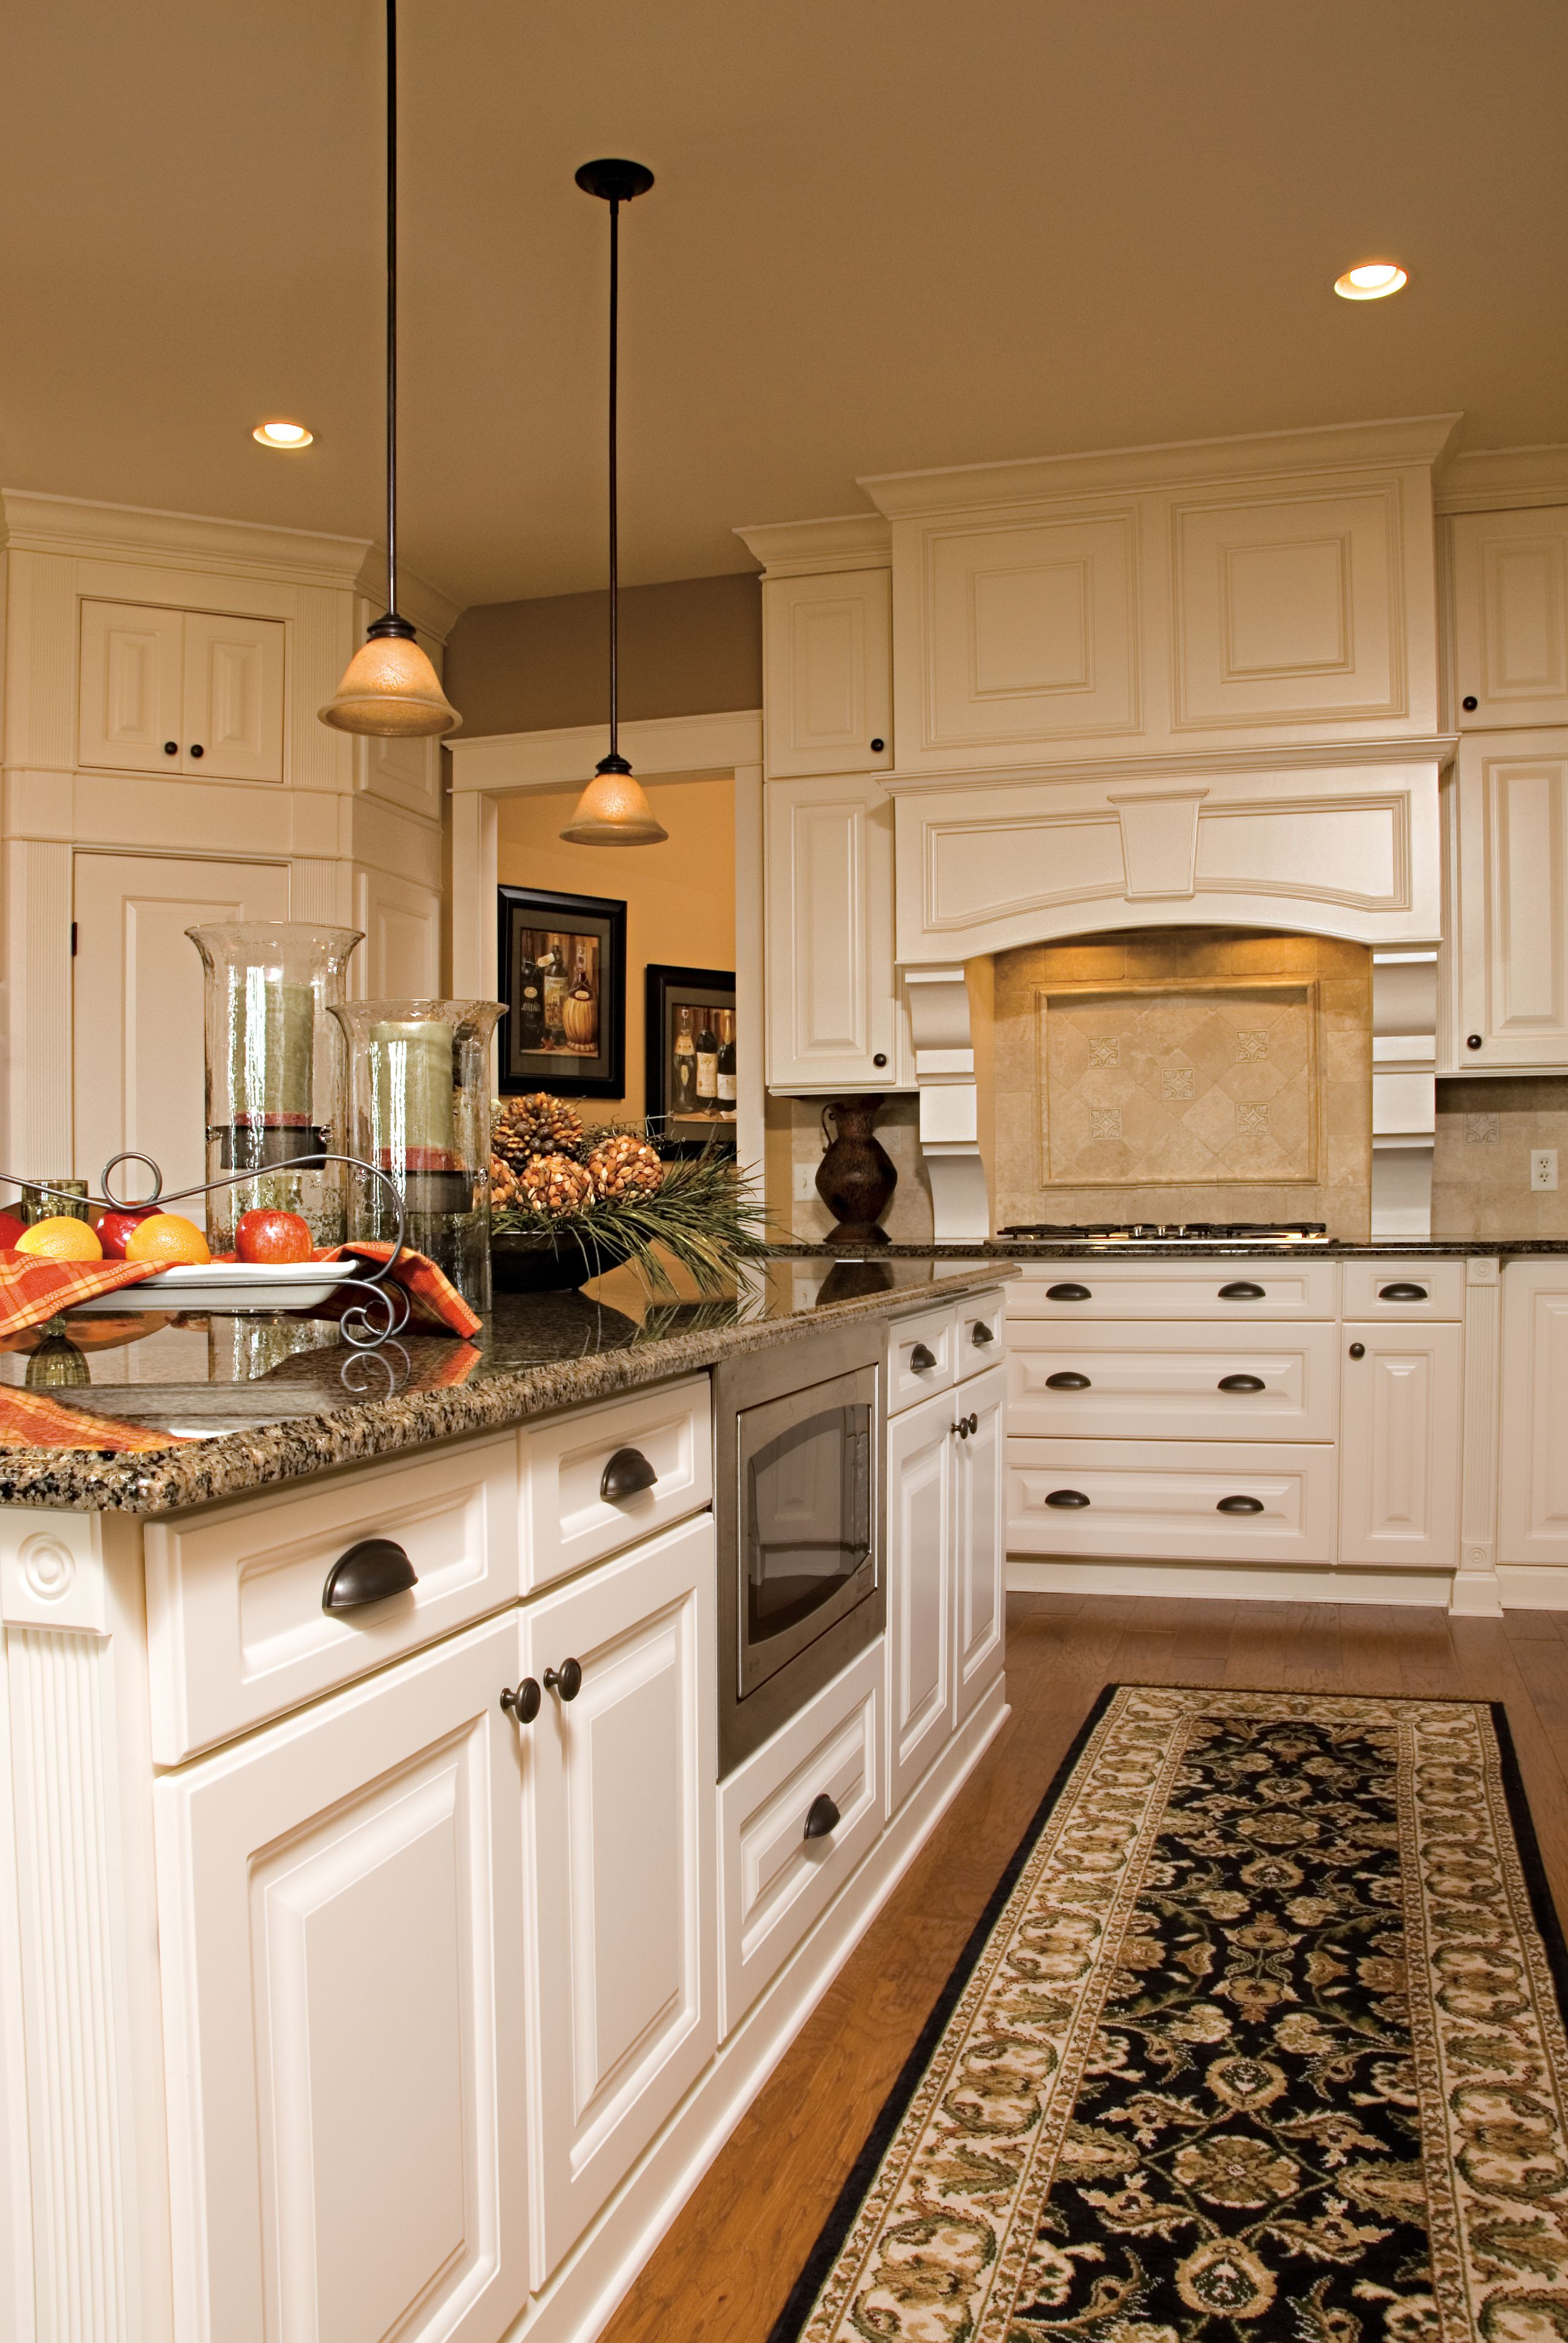 Thermofoil Cabinets Kitchen Cabinet Door Styles Kitchen Cabinet Styles Kitchen Design